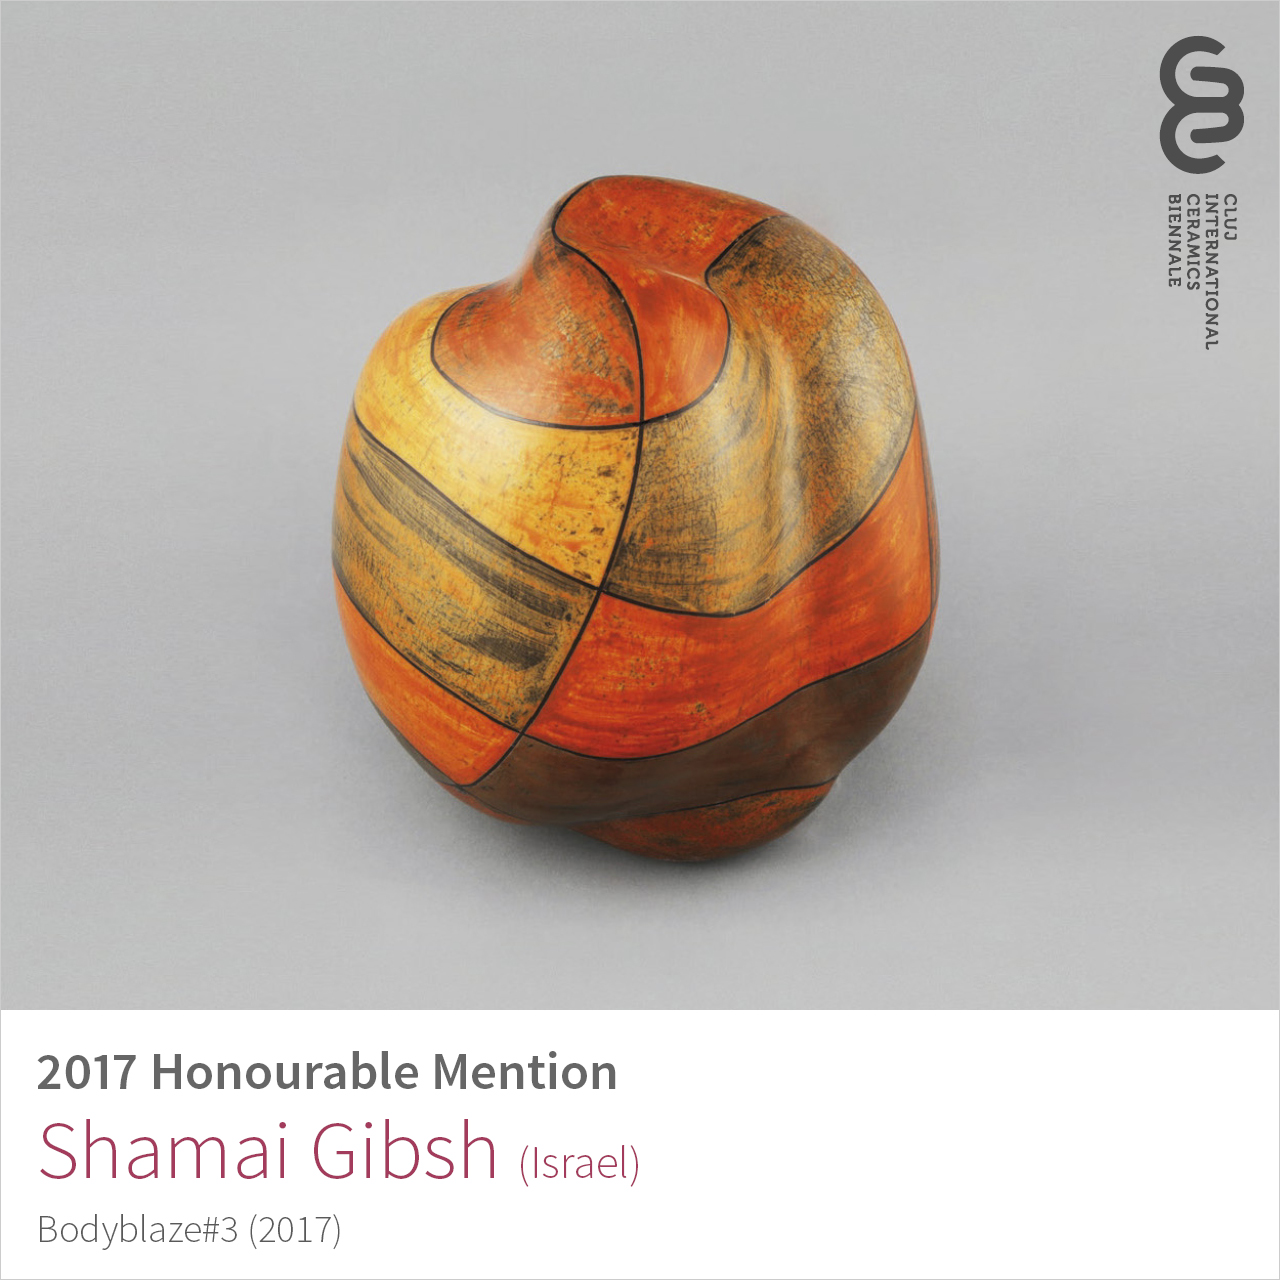 Shamai Gibsh (Israel), Honourable Mention at Cluj Ceramics Biennale 2017